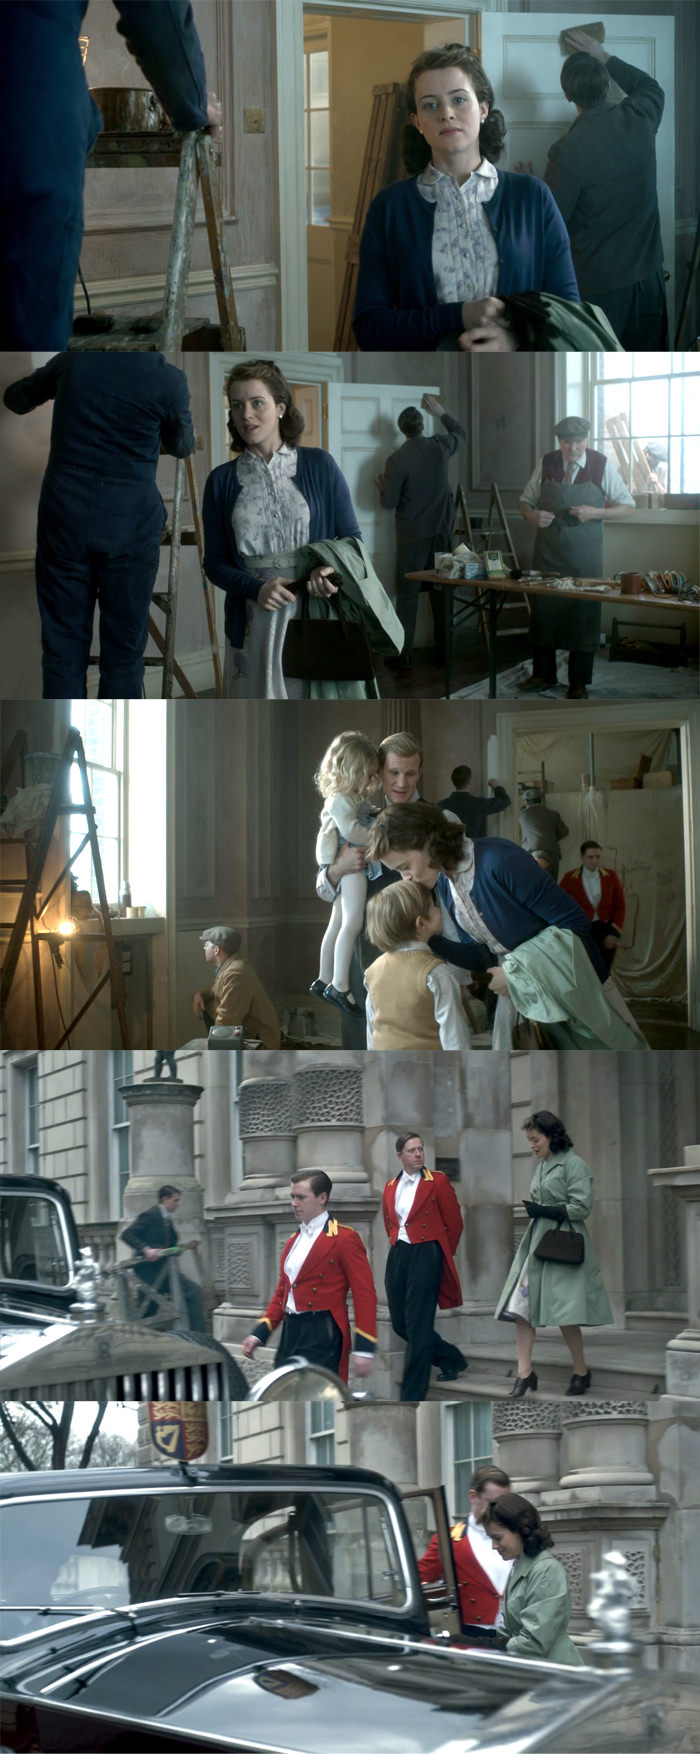 the-crown-style-season-1-episode-1-netflix-costumes-tom-lorenzo-site-16